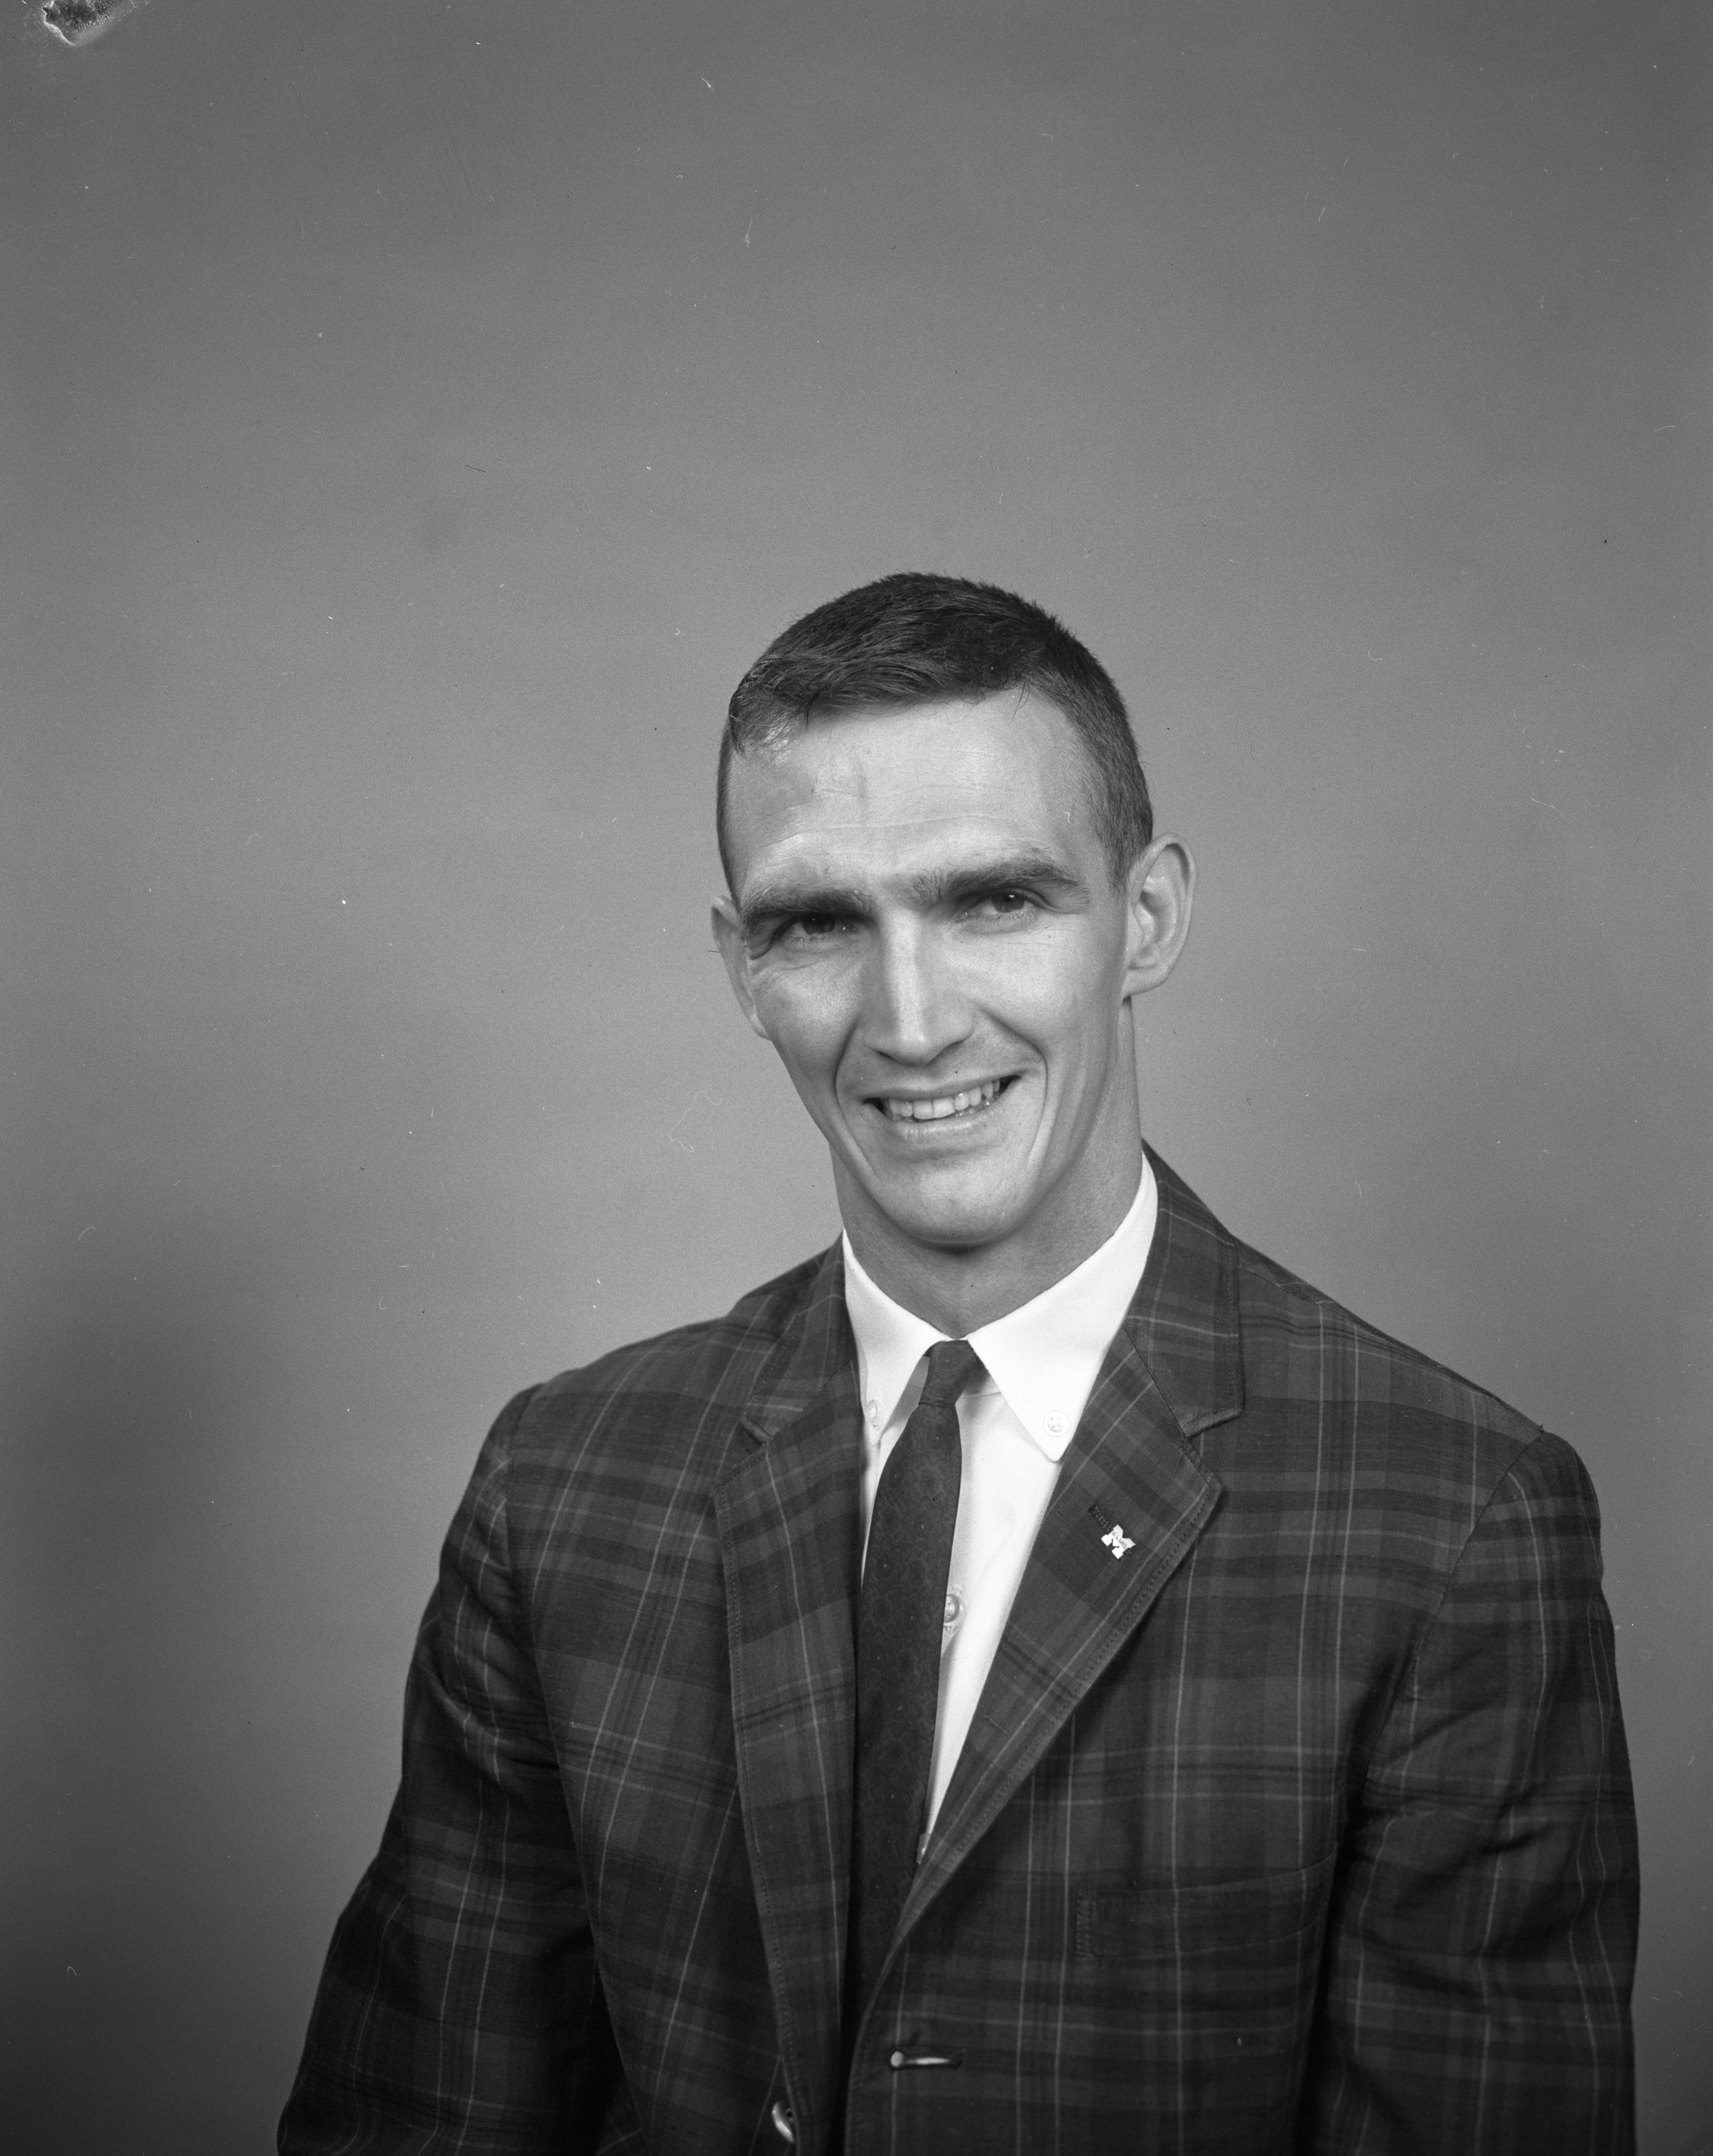 Jay Stielstra, August 1962 image